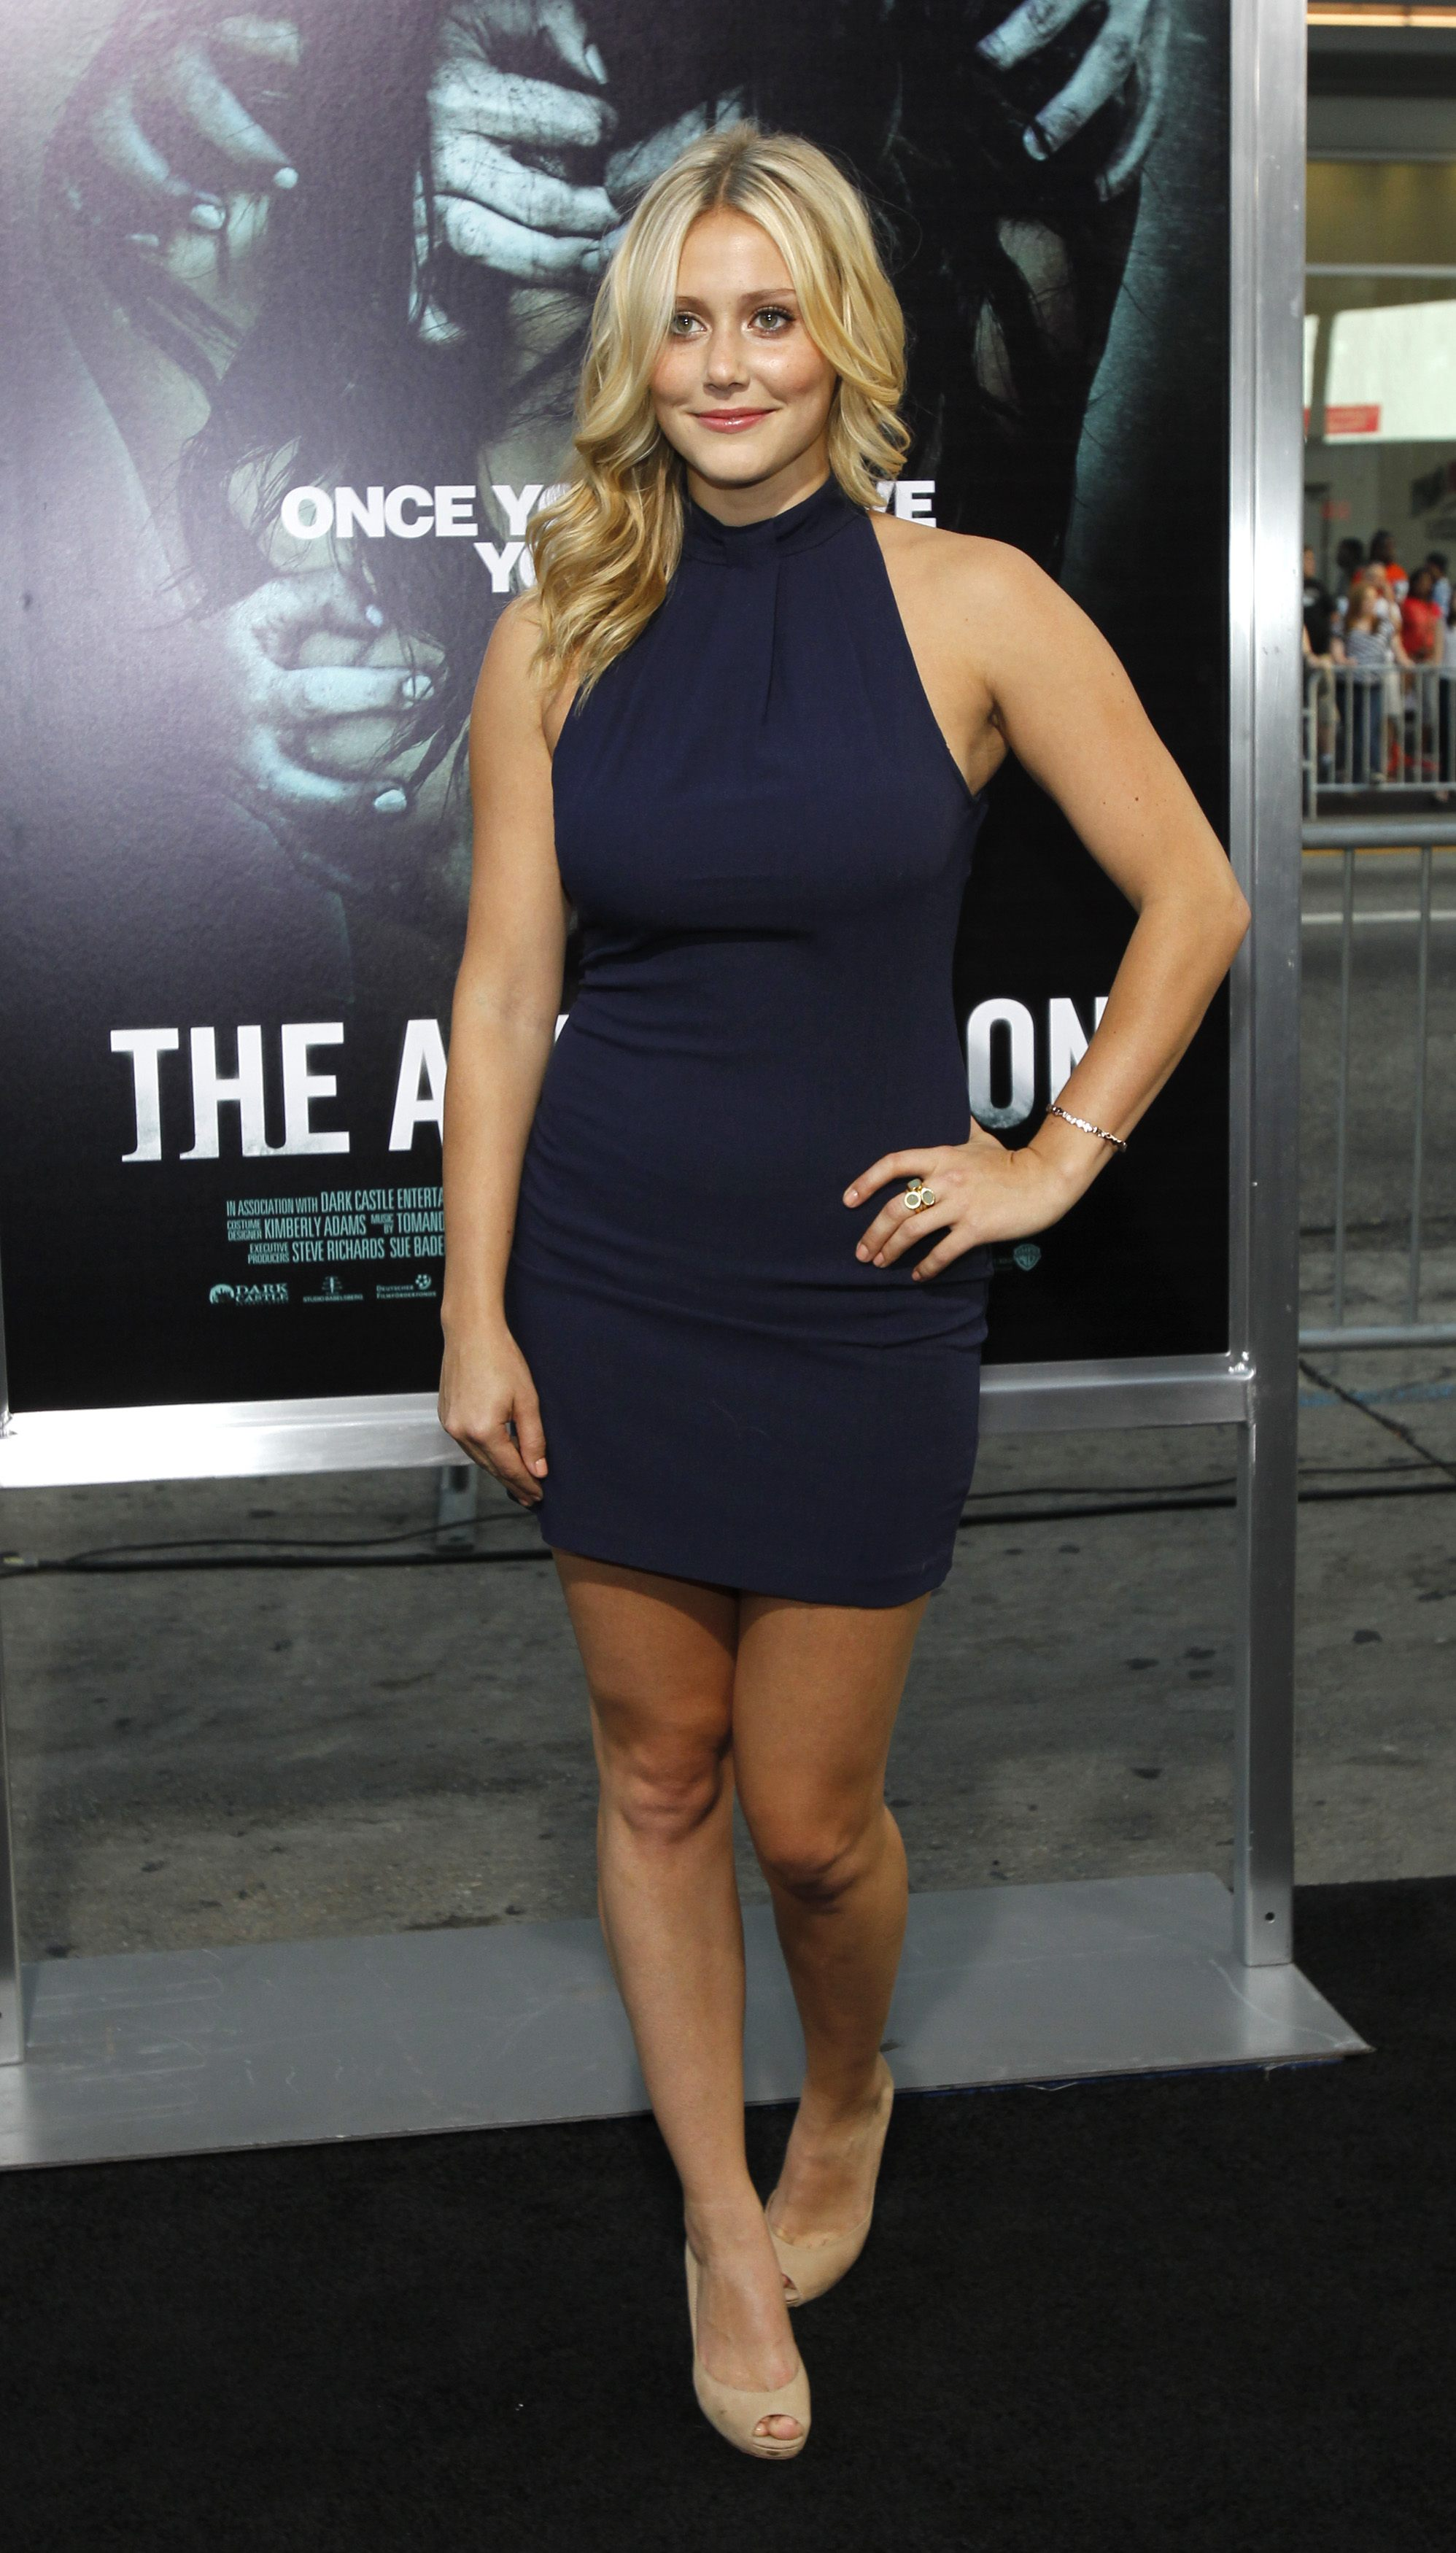 Julianna Guill - The Apparition Hollyywood premiere